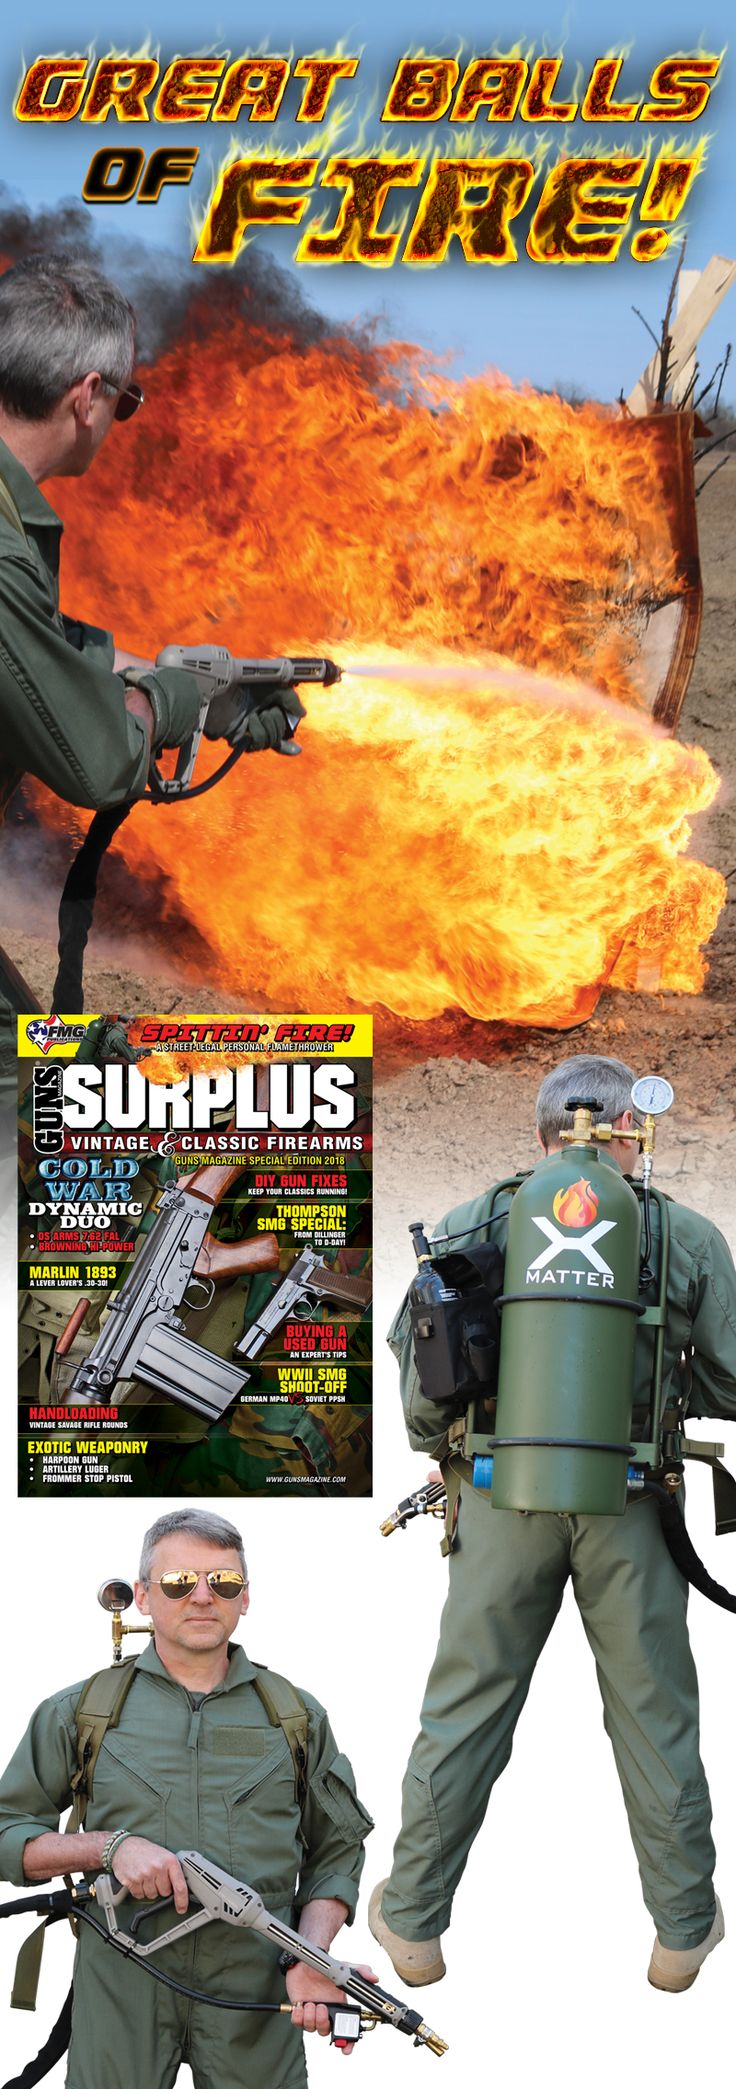 """A Street Legal Personal Flamethrower   Hot fun with the Xmatter X15   Find any gathering of real men, drag out the X15 and ask, """"Who's next on the flamethrower?"""" You'll have more friends than you can stand. Read why the X15 may need to go to the top of your surplus list.   © GUNS Magazine Surplus 2018"""